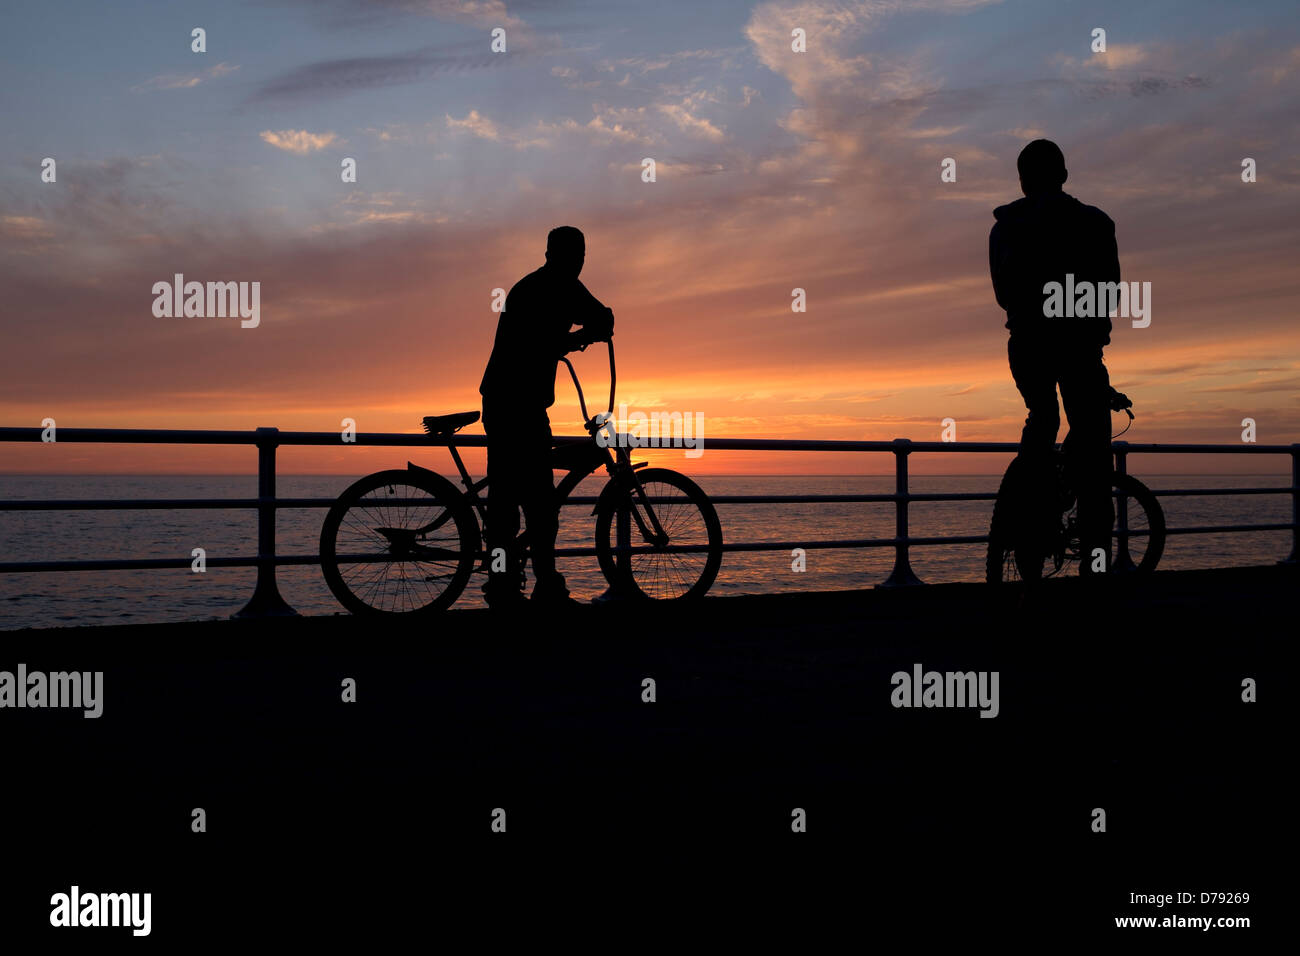 Two cyclists in silhouette watching the sunset from the promenade, Aberystwyth, Wales Uk April 23 2013 - Stock Image